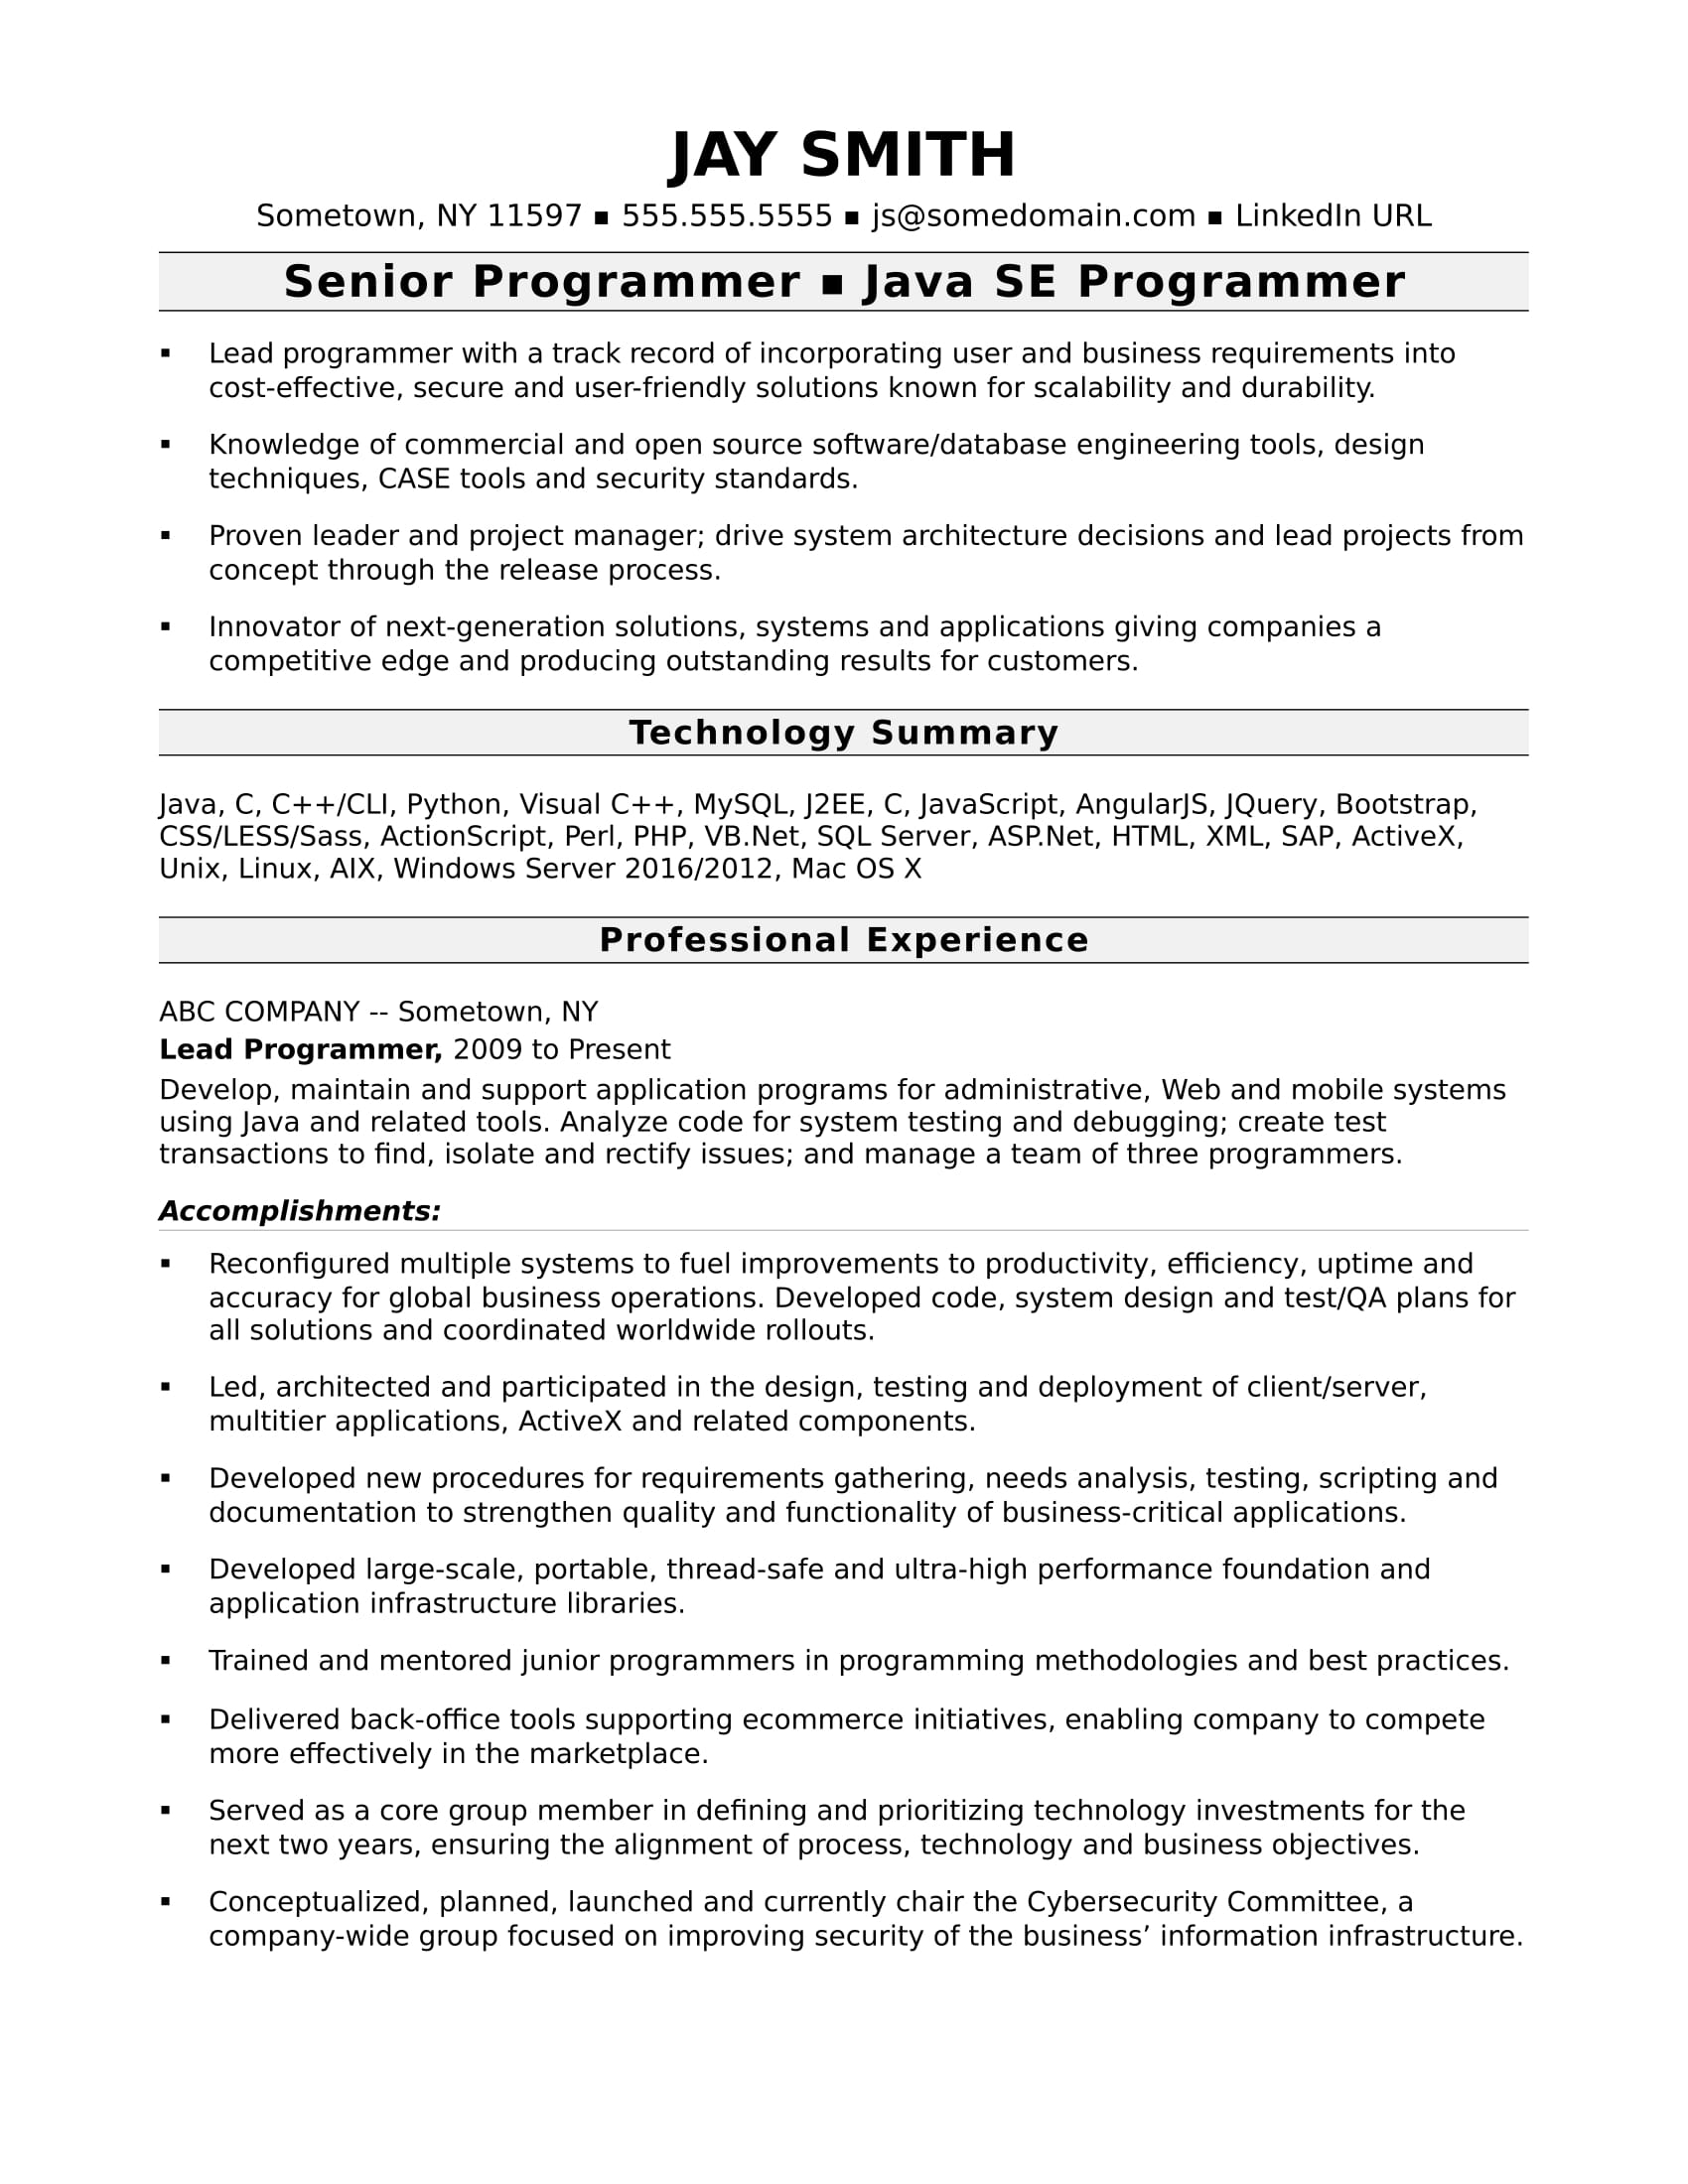 programmer resume template monster writing tips computer experienced help tucson public Resume Monster Resume Writing Tips